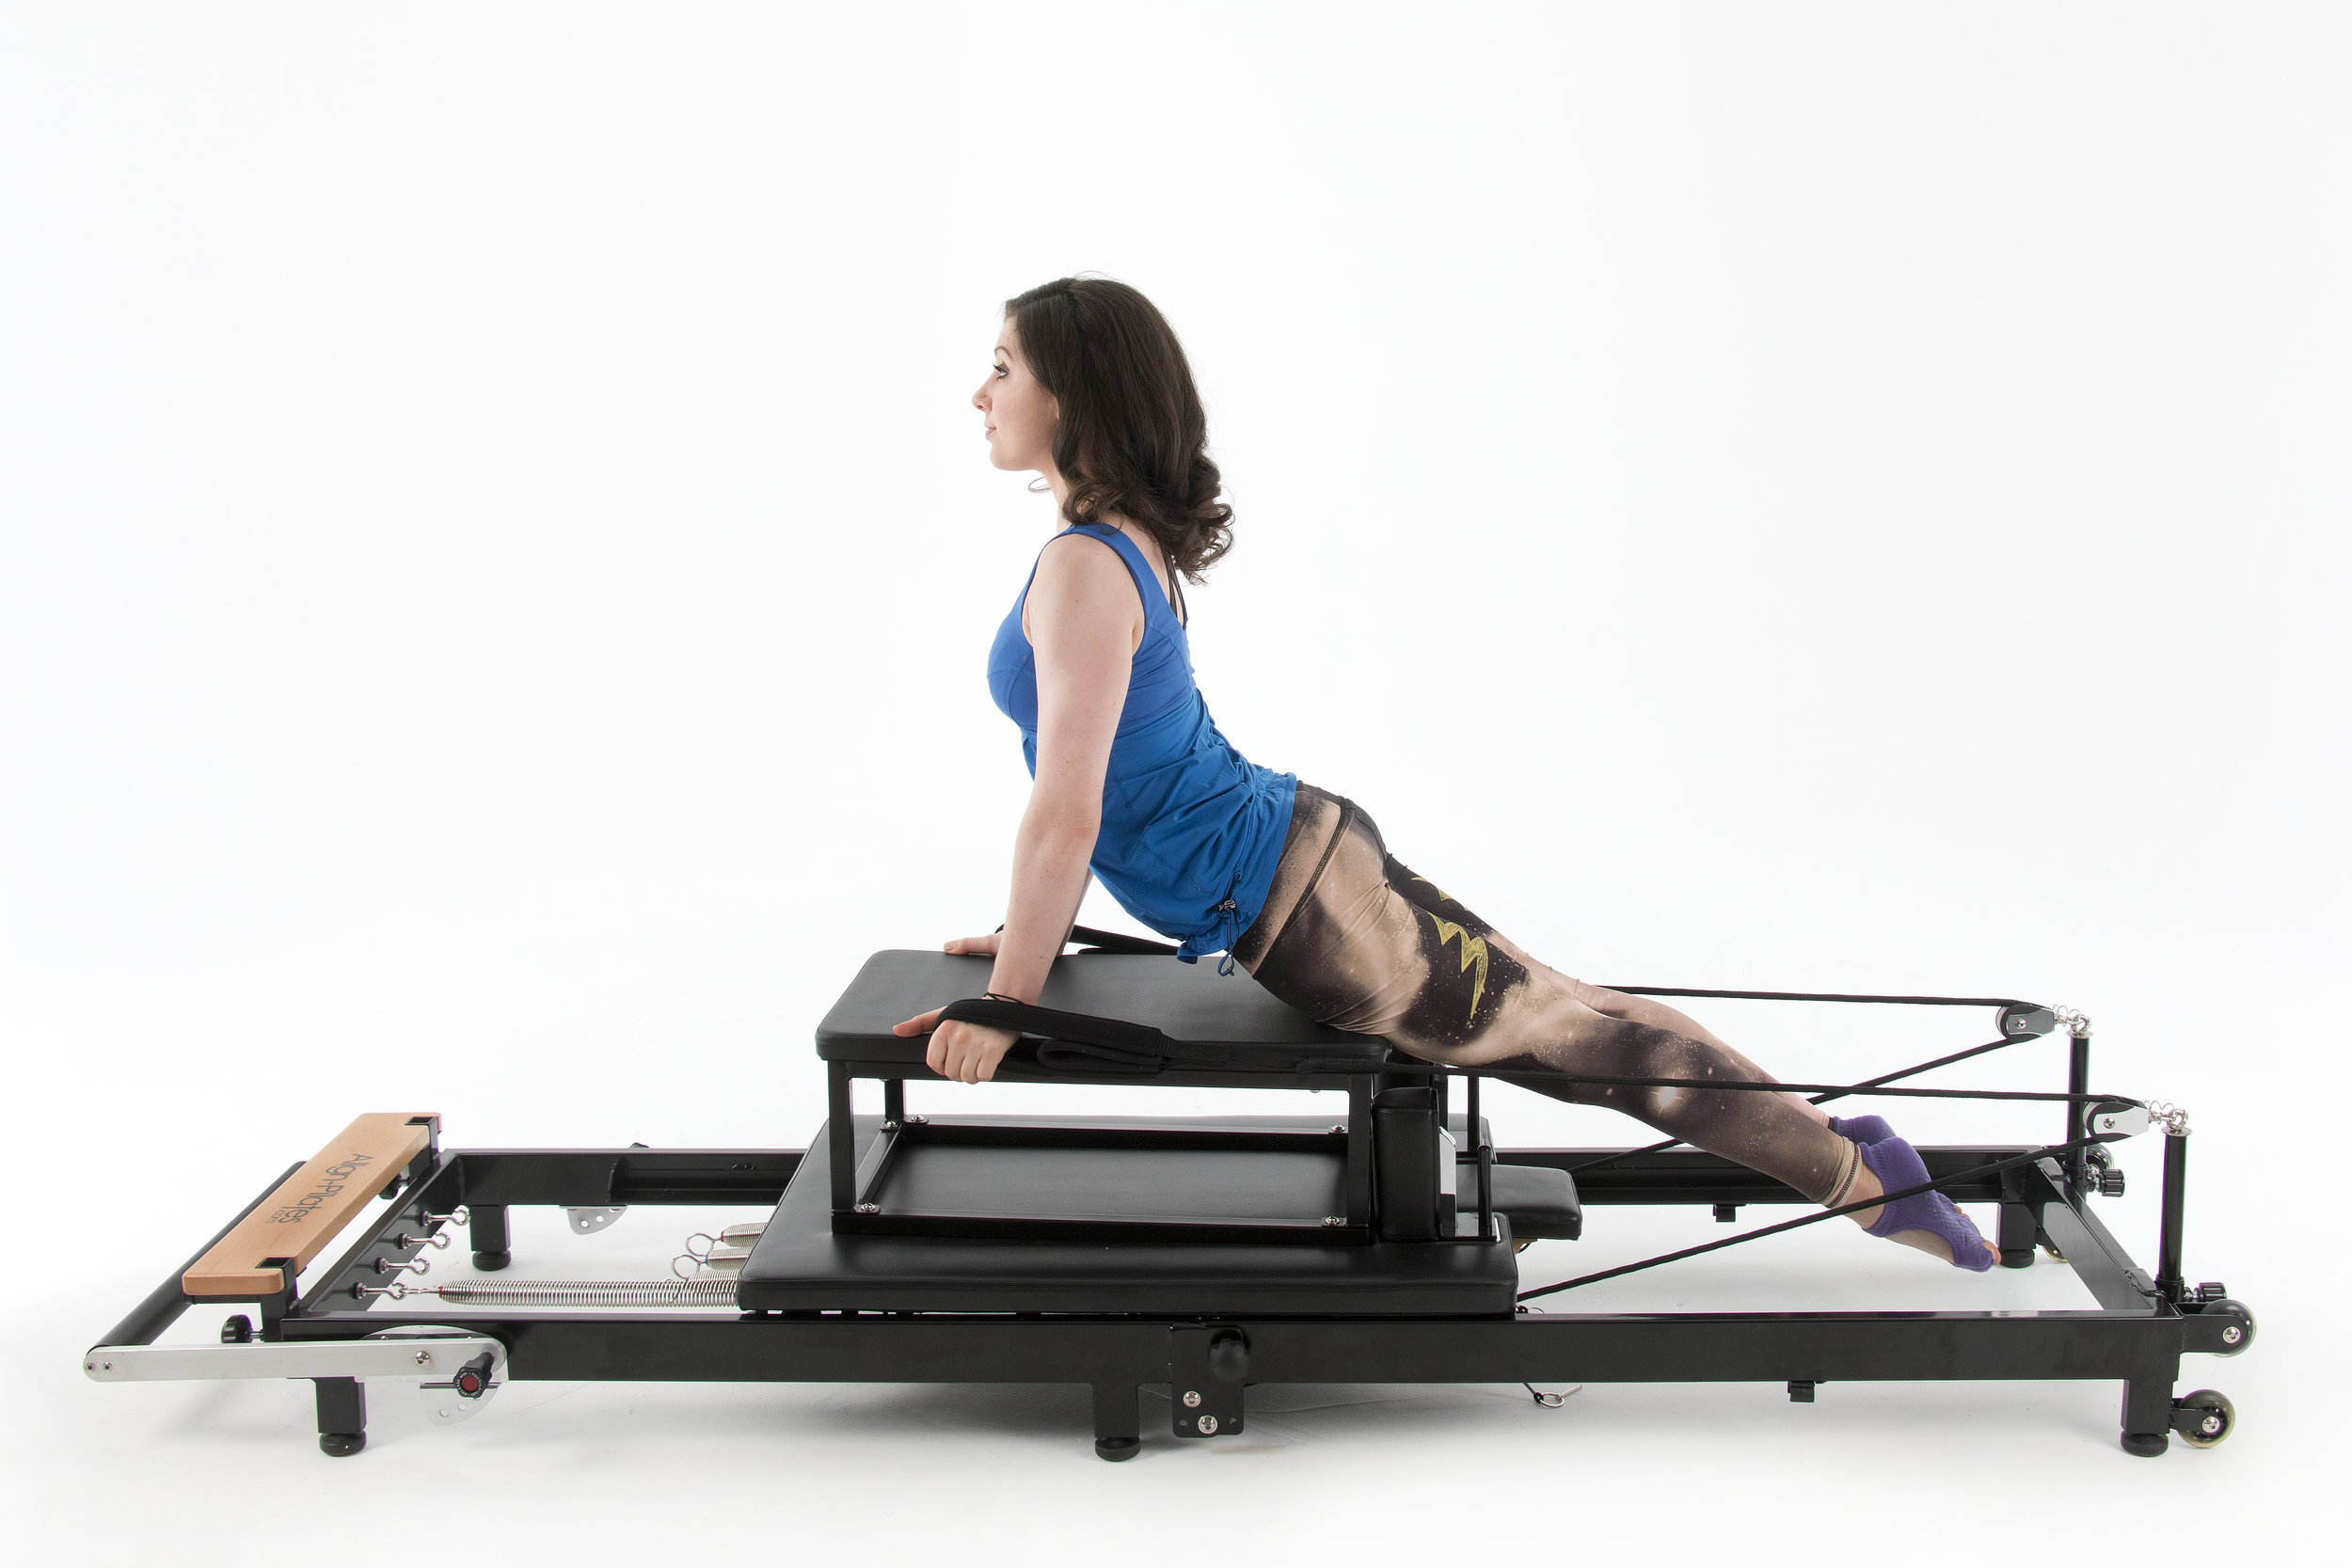 Align F2 home folding pilates reformer with framed sitting box